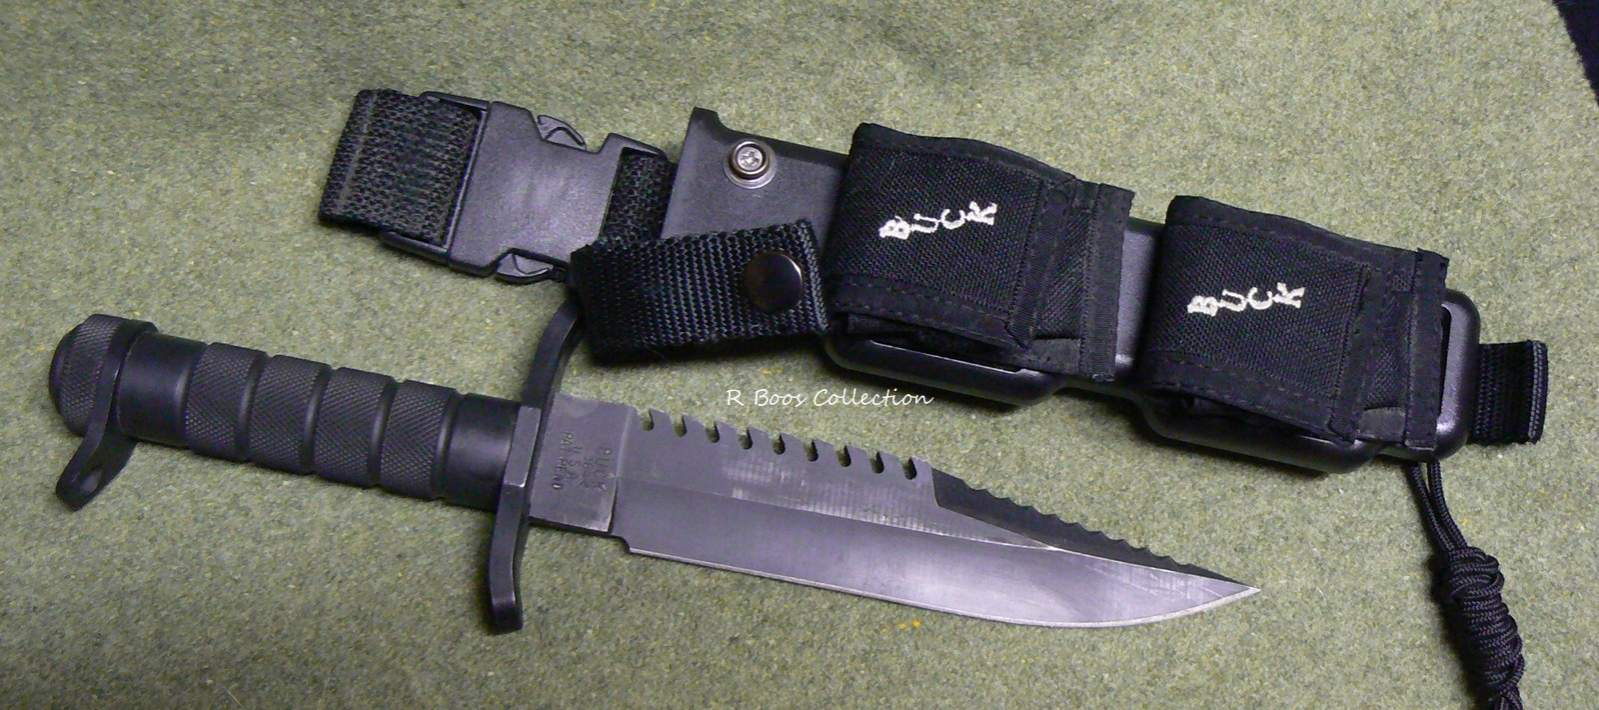 Opinion On This Usmc M9 Bayonet